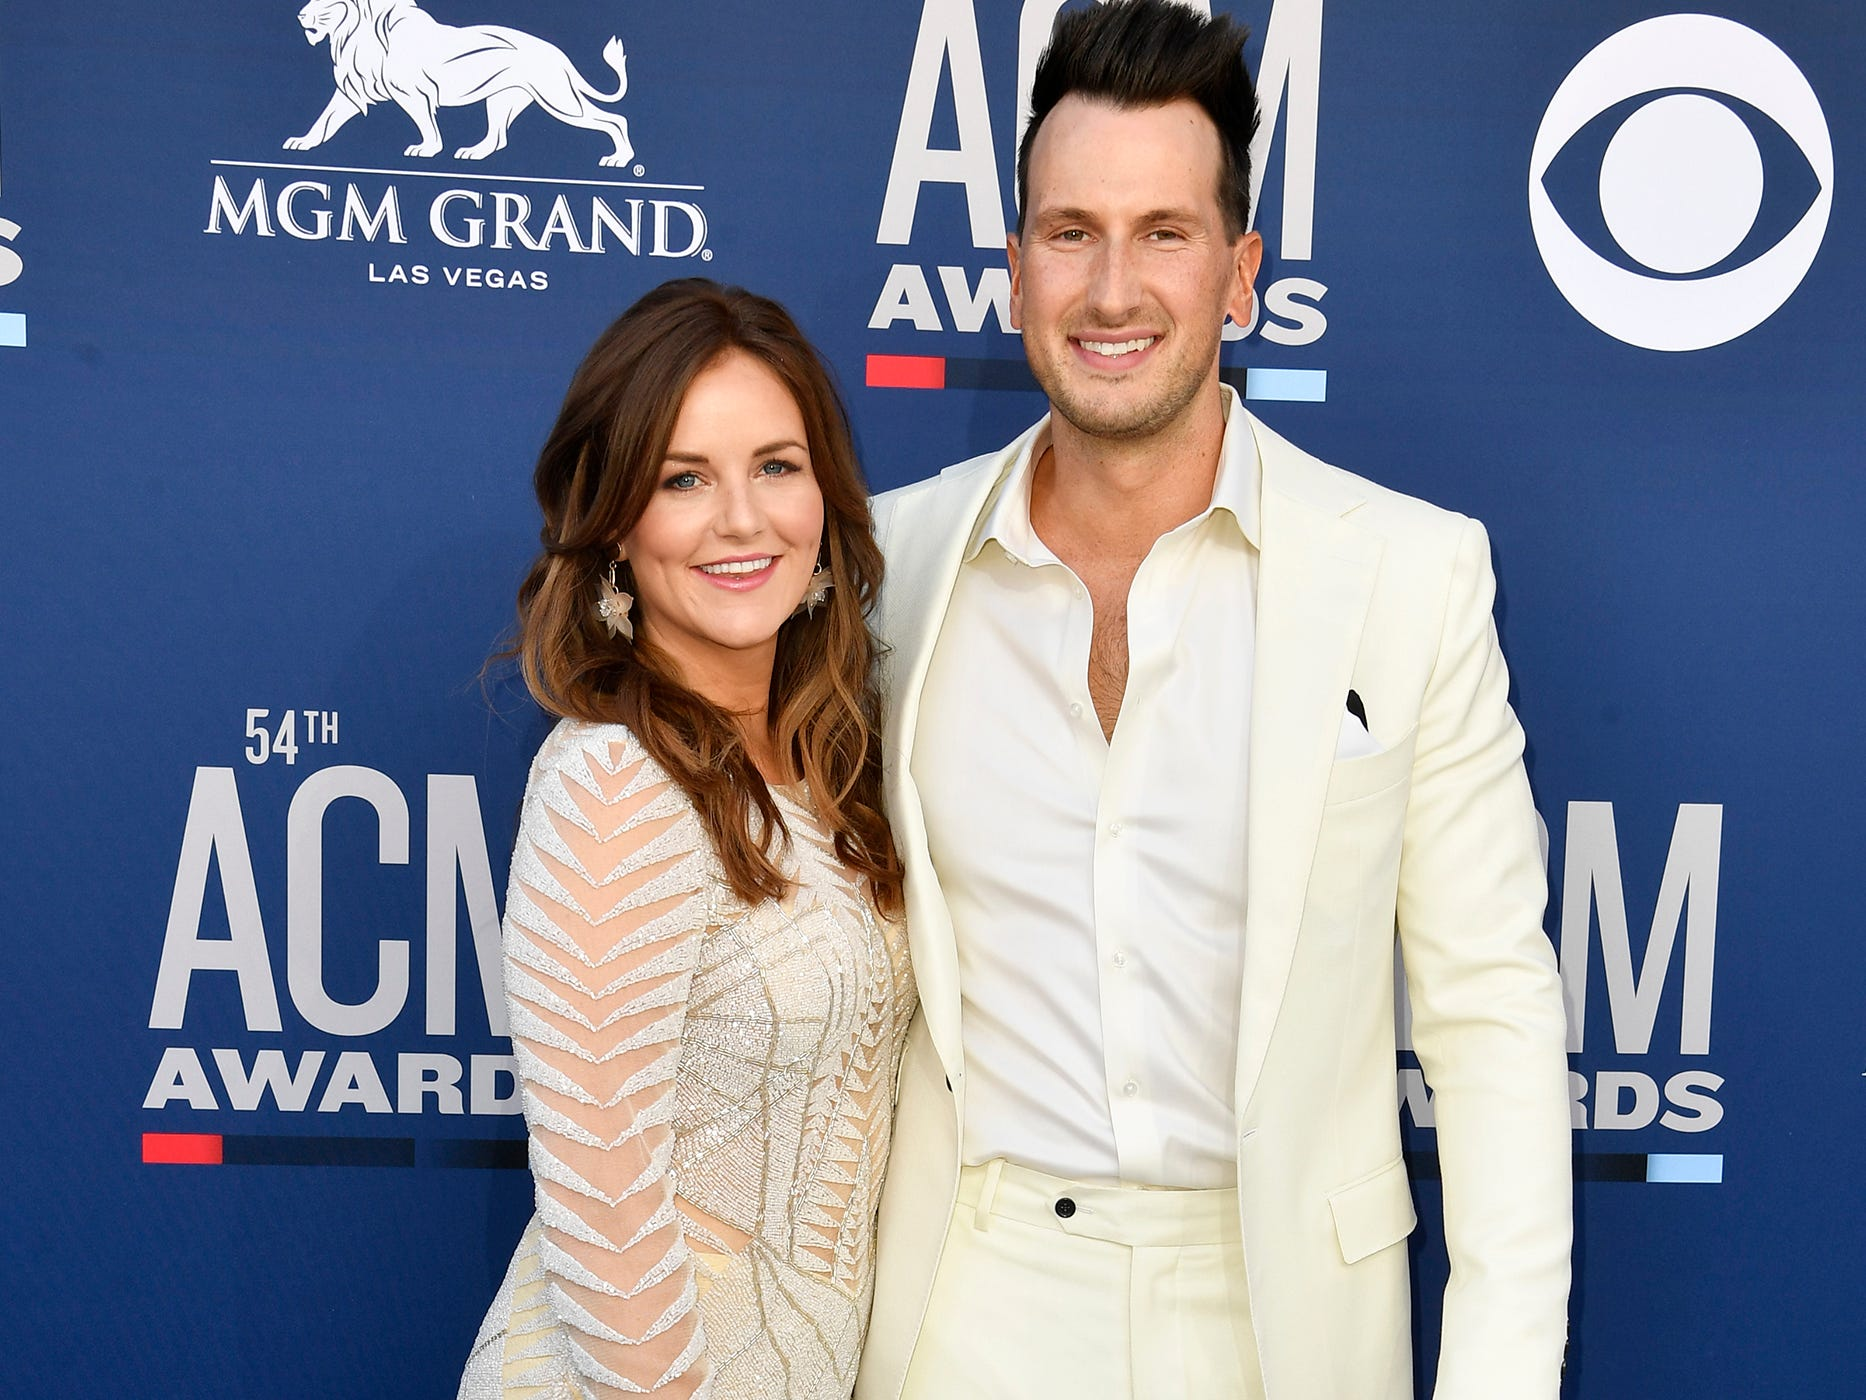 Russell Dickerson, right, and Kailey Dickerson, walks the red carpet at the 54TH Academy of Country Music Awards Sunday, April 7, 2019, in Las Vegas, Nev.